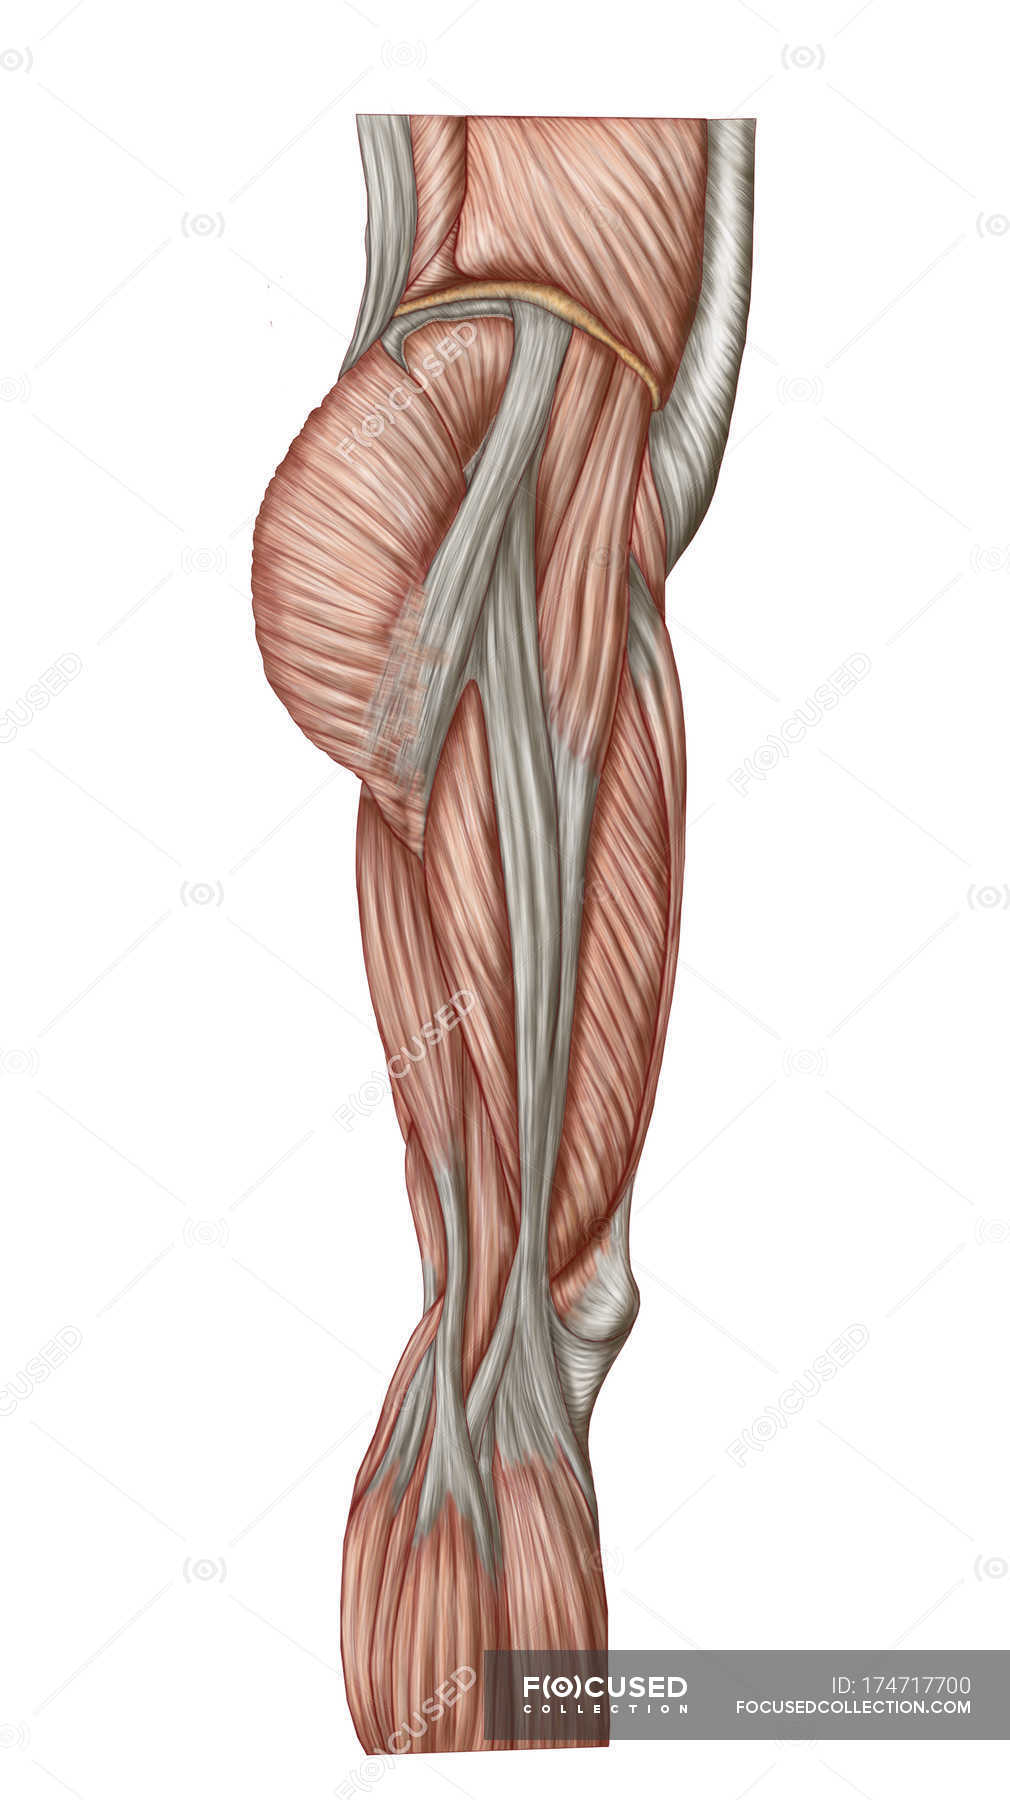 Anatomy Of Human Thigh Muscles White Background Side View Stock